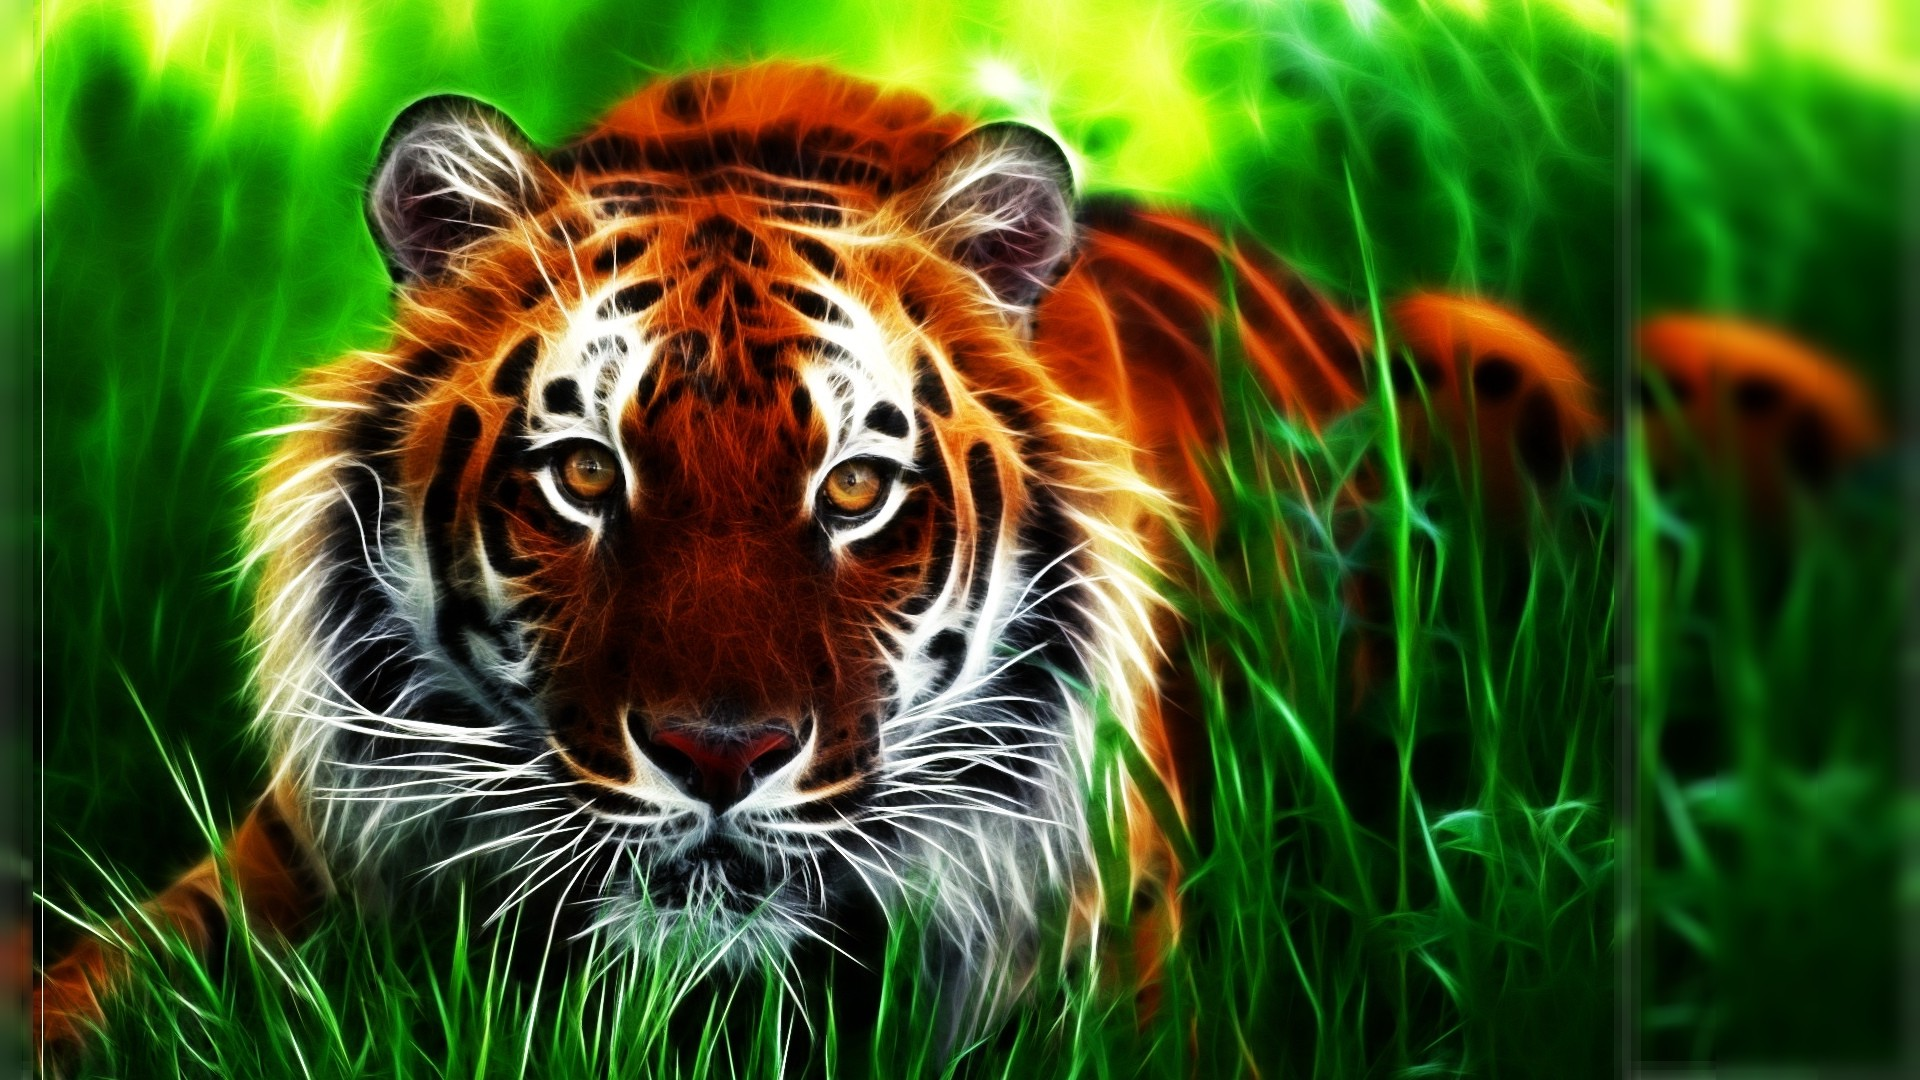 tiger background wallpaper #8